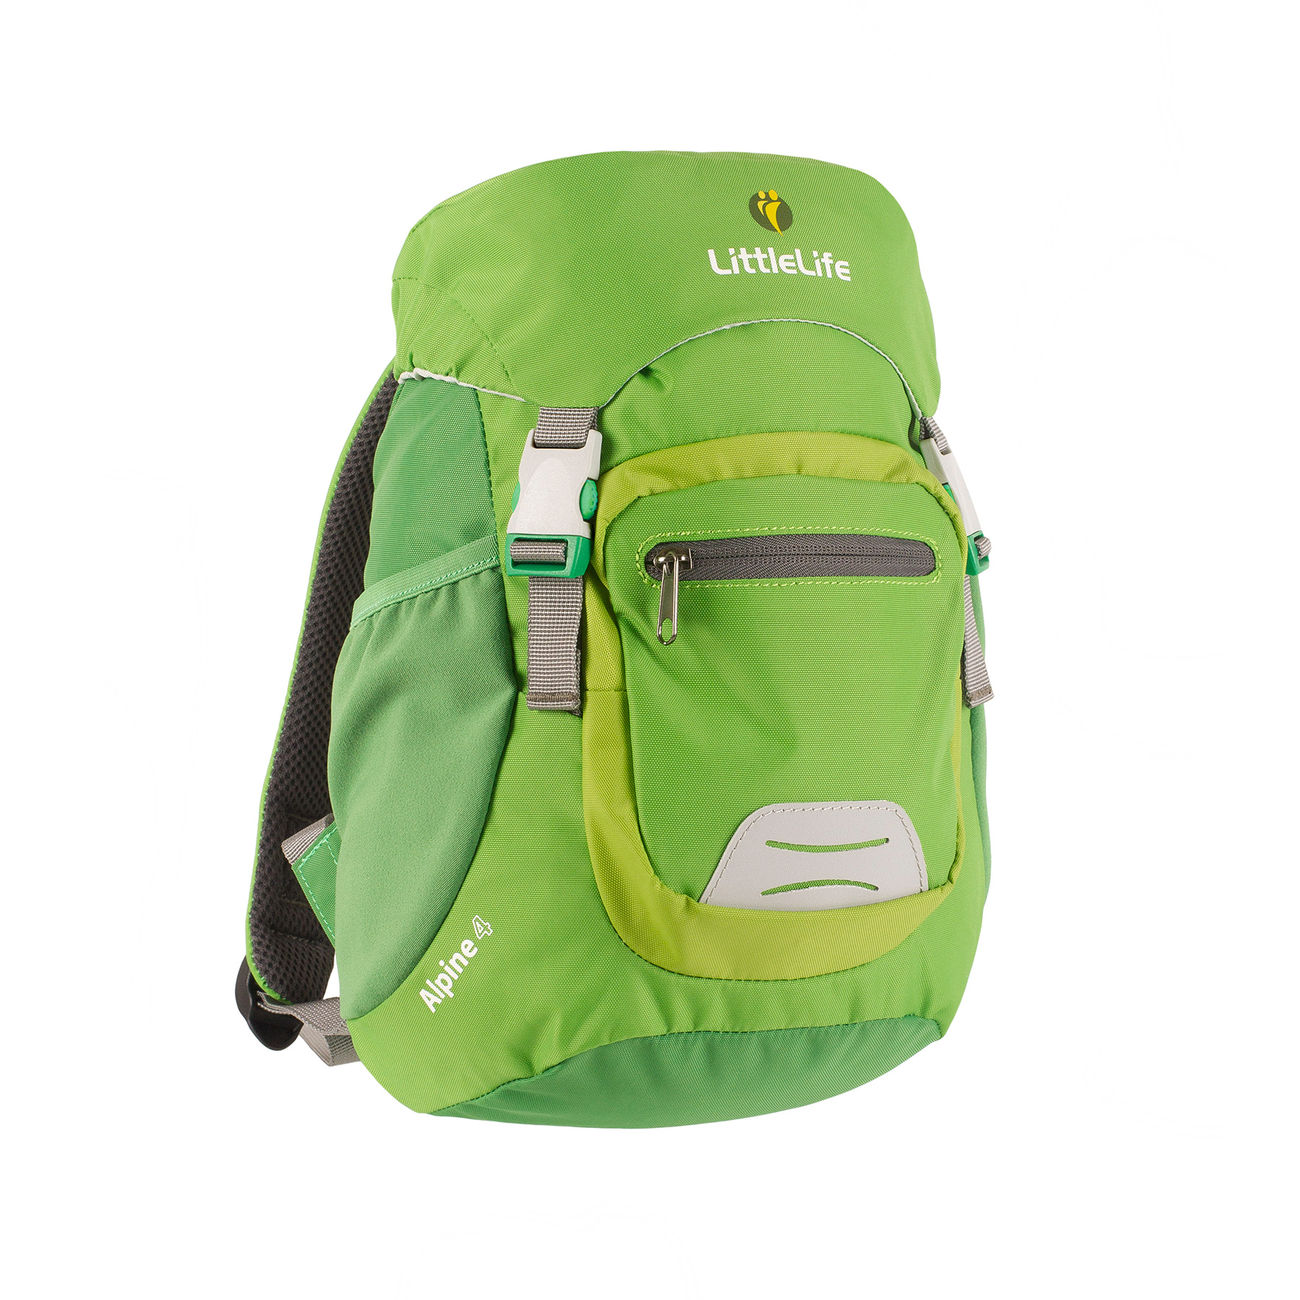 Little Life Kinder Daypack Alpine 4 grün 0